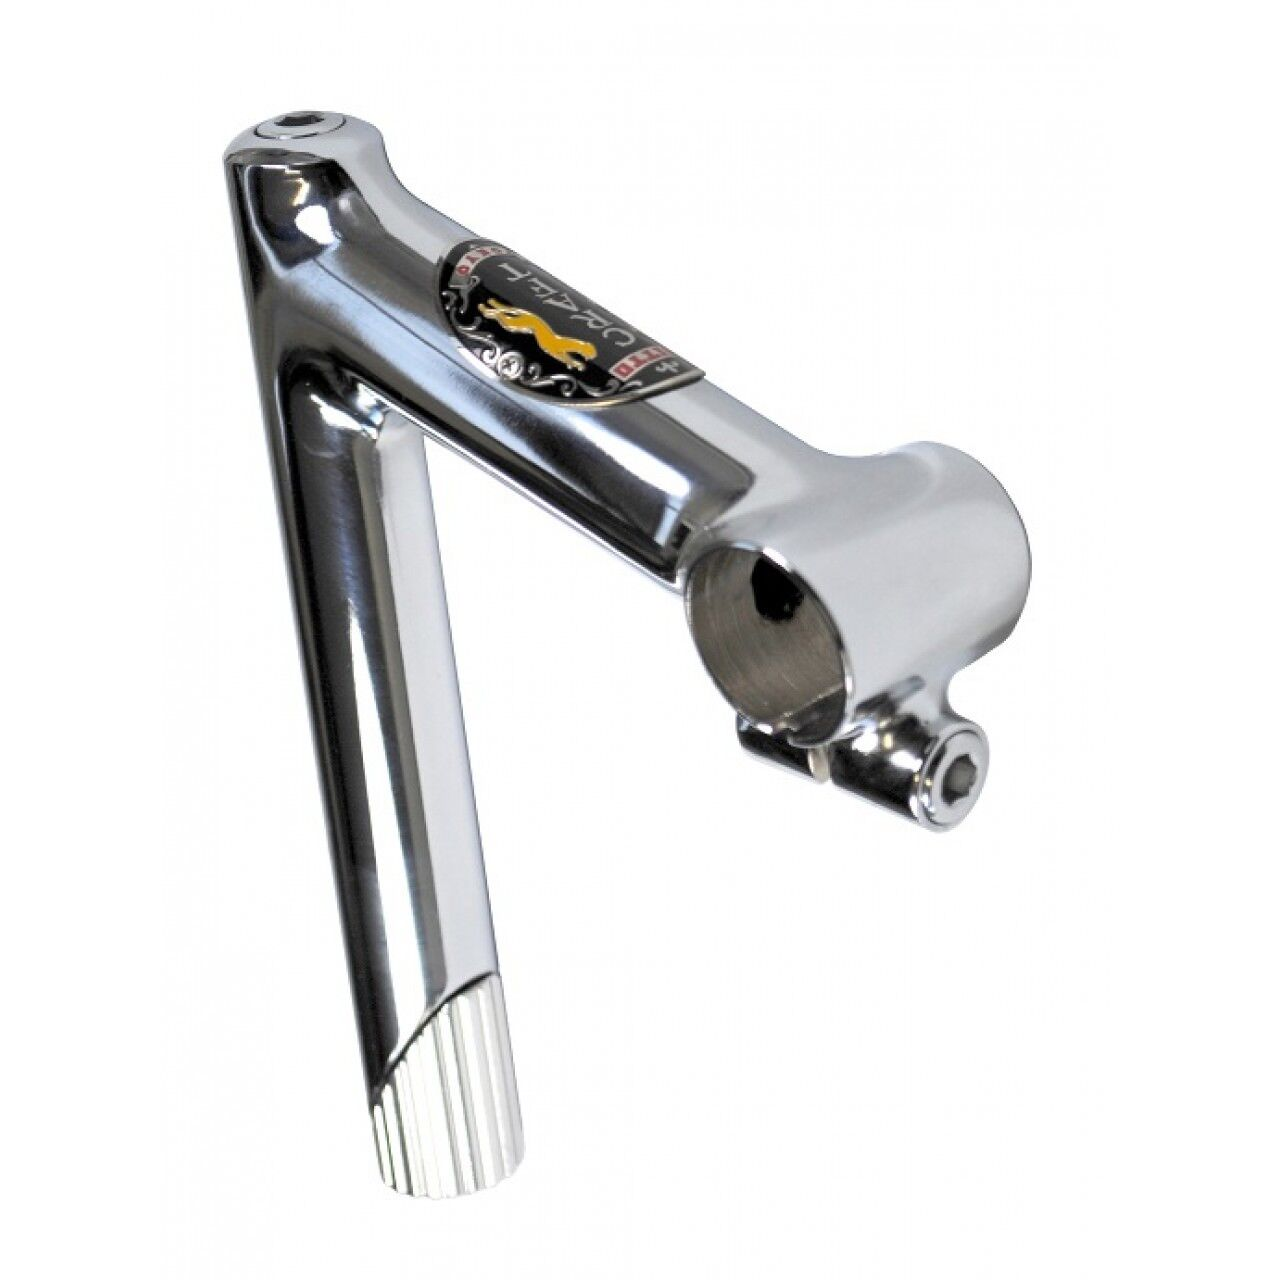 Nitto Craft Steel Quill Stem Polished Chrome 25.4 & 26.0 Multiple Stem Diuominiiones